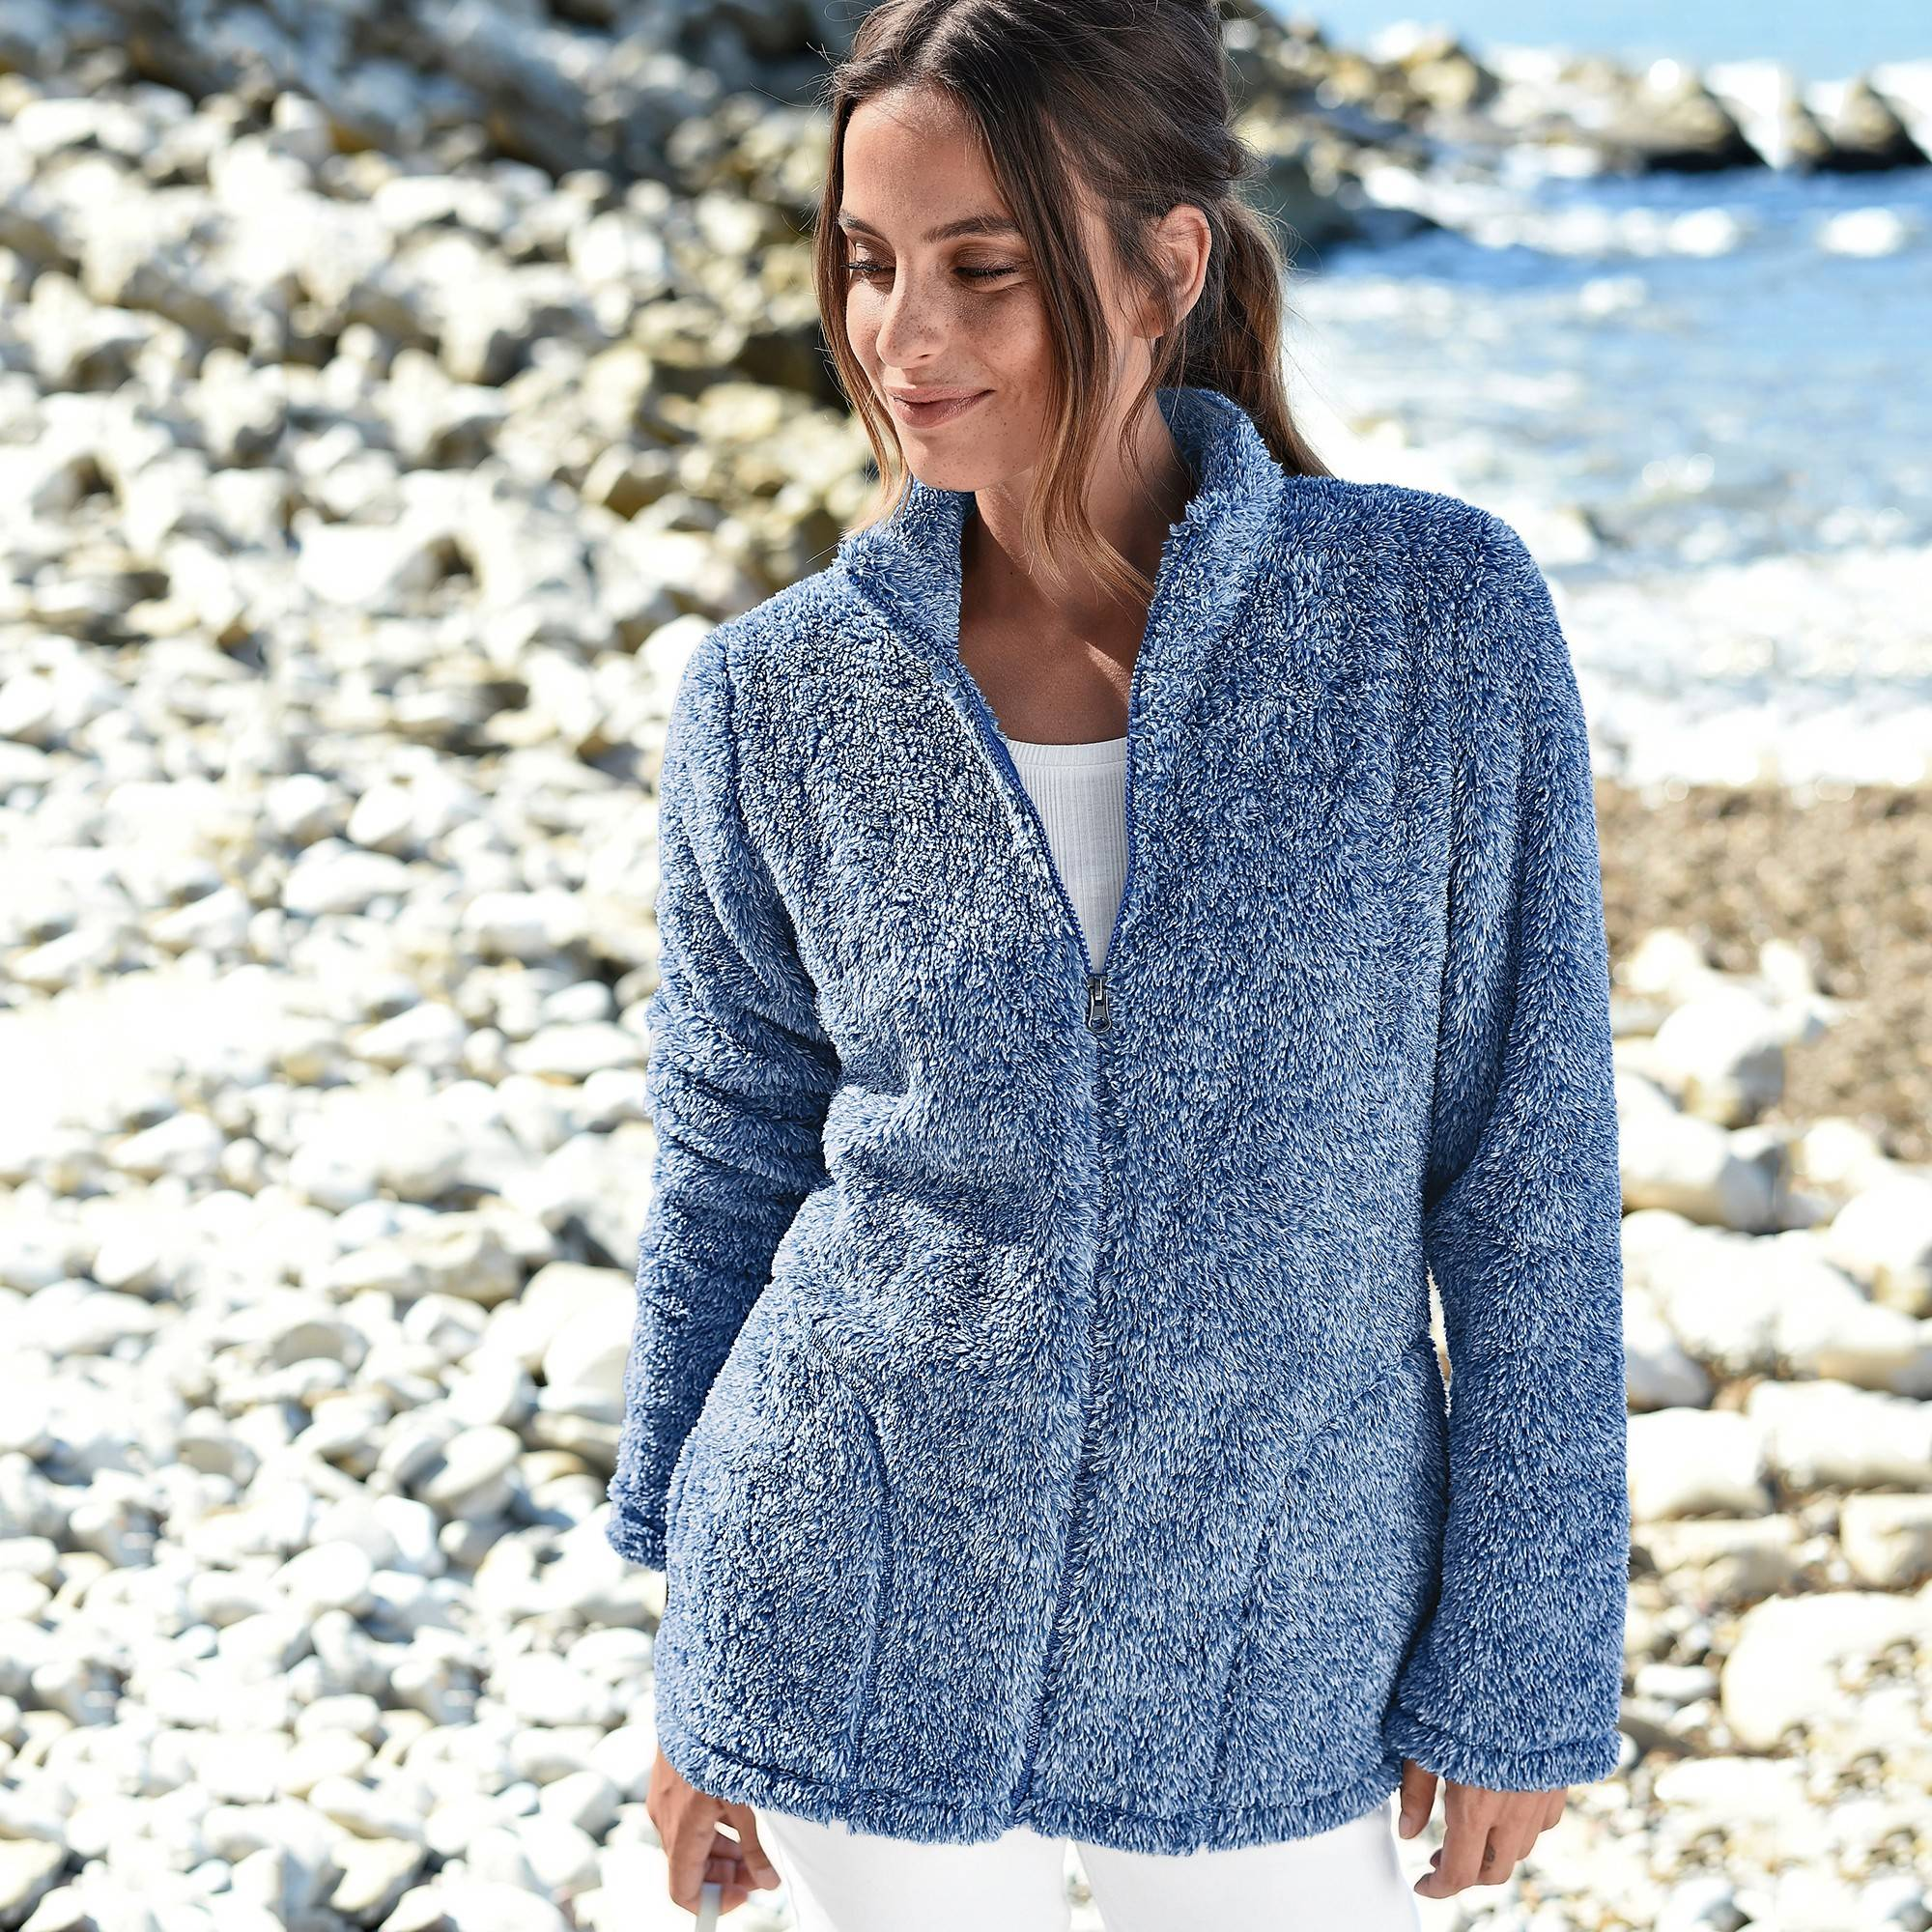 Casual Collection Veste maille peluche - Bleu - Taille : 52 - Blancheporte